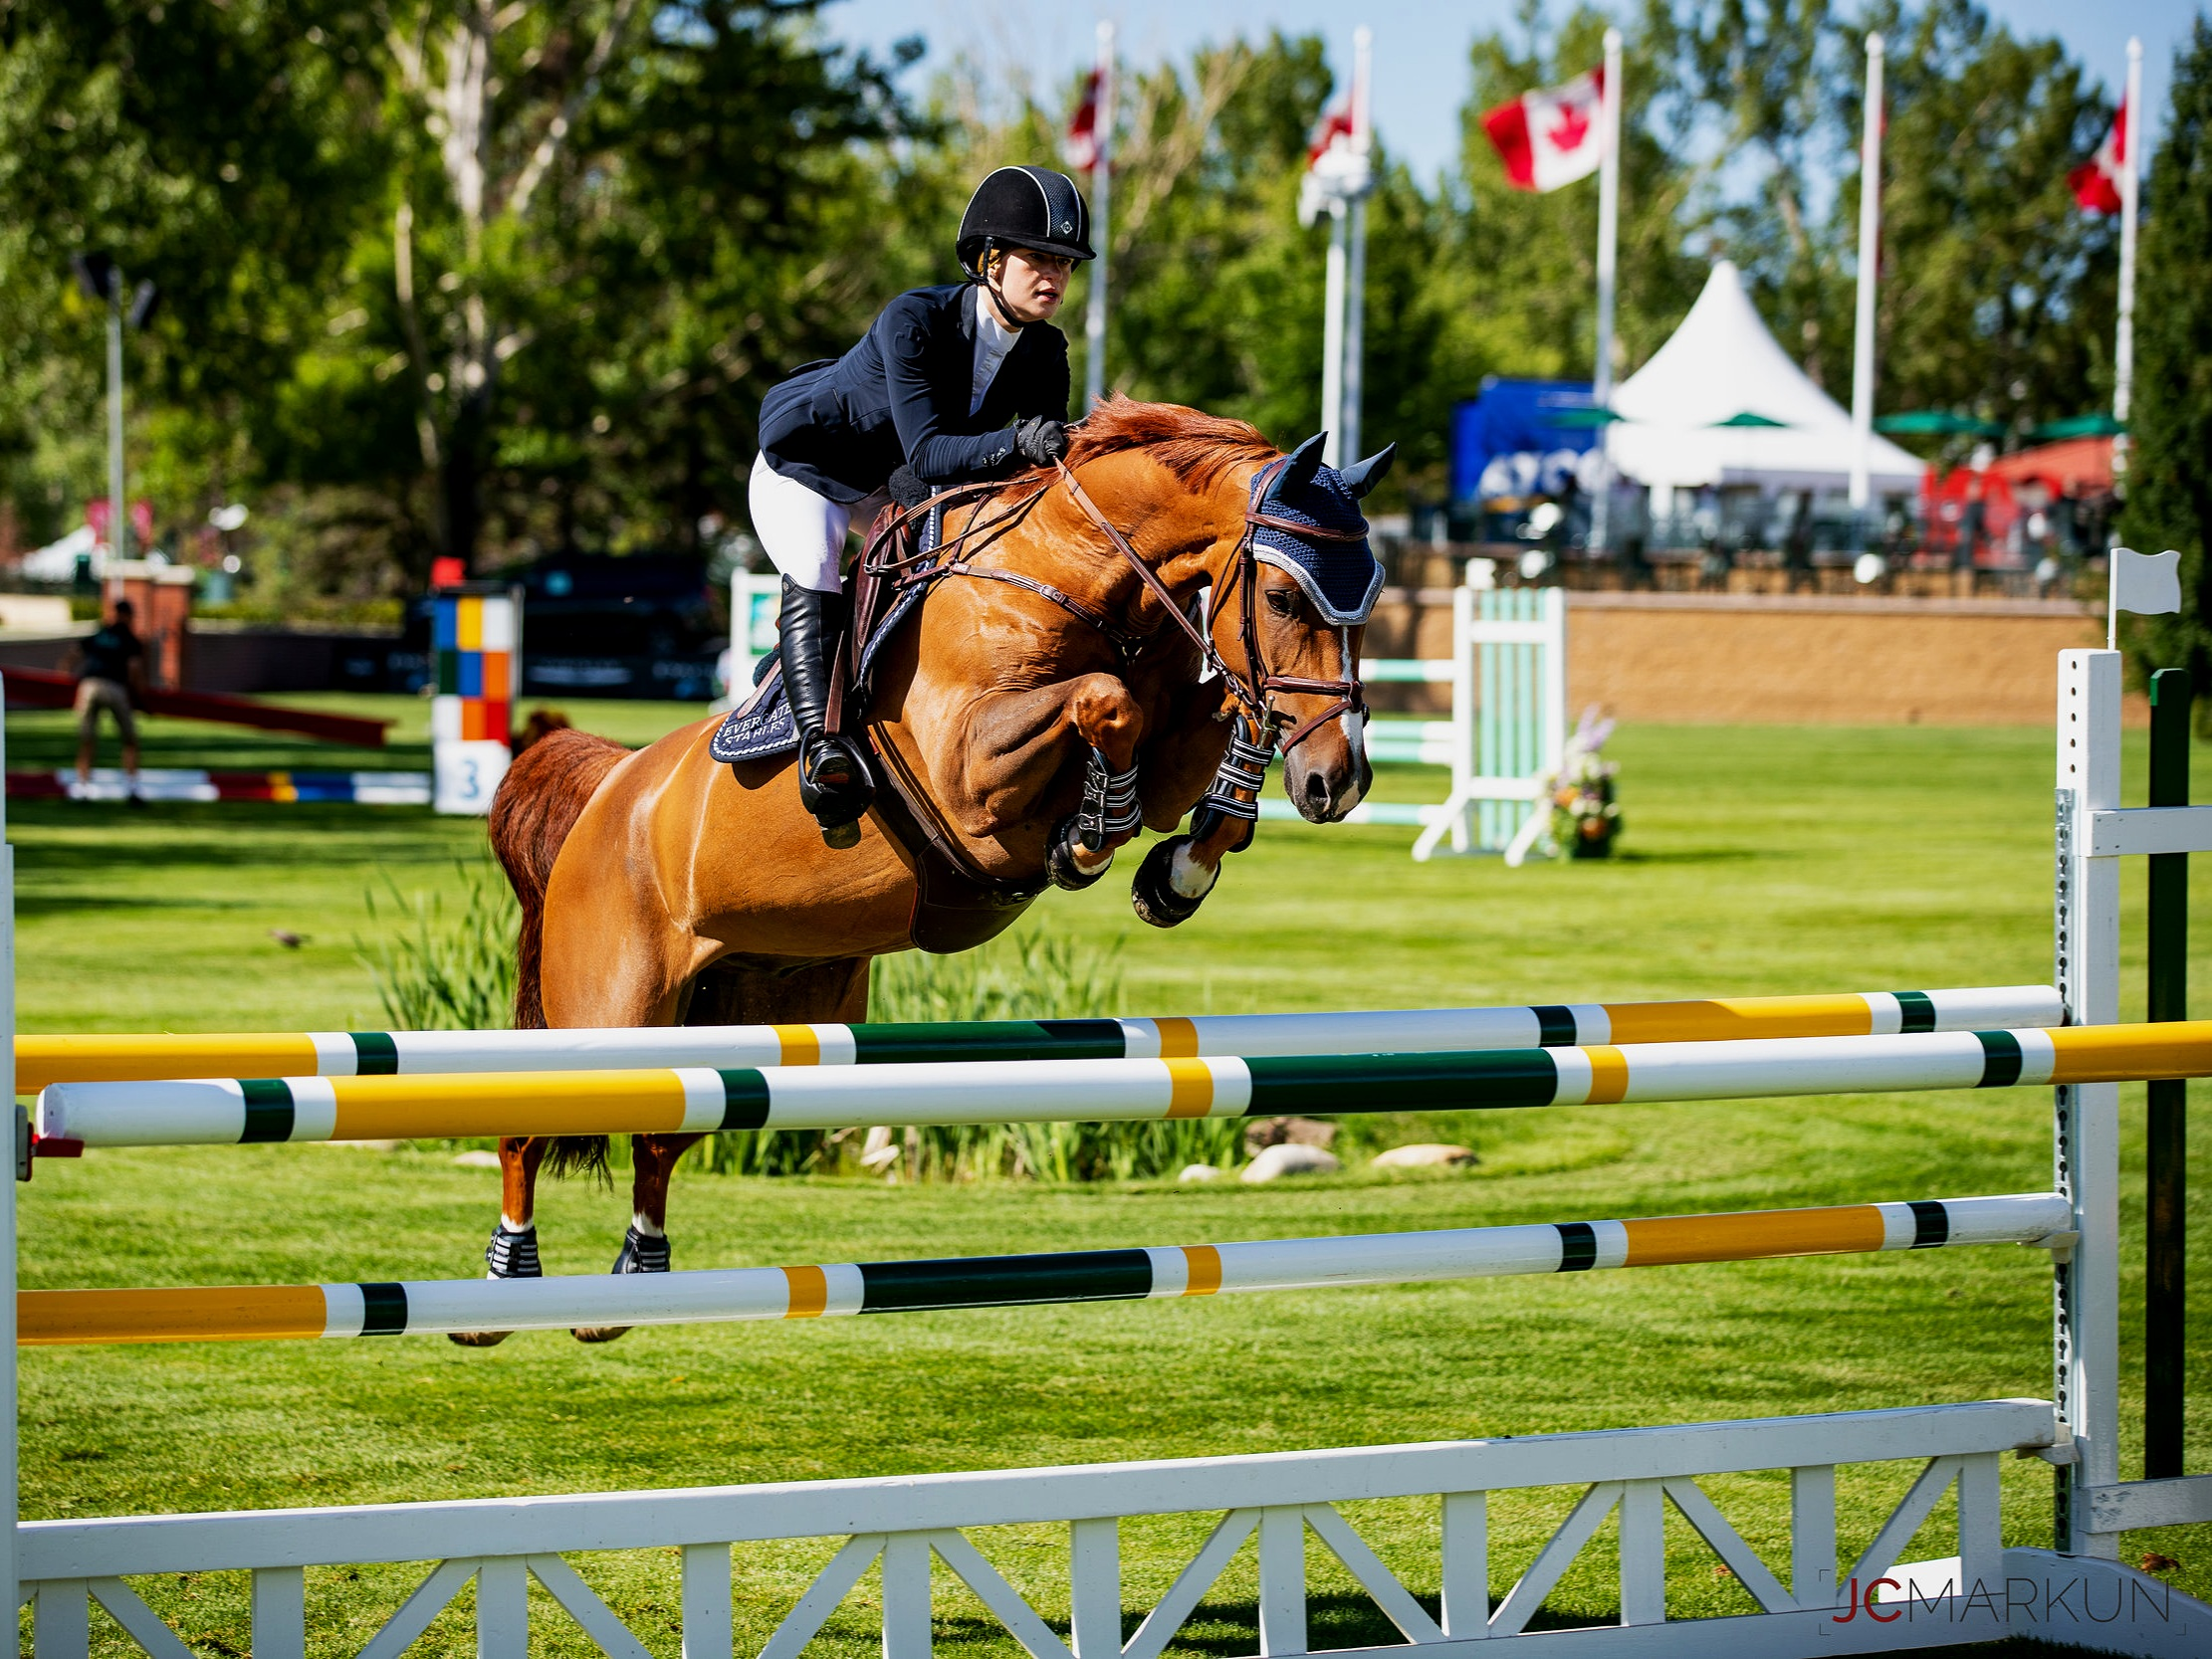 Jenn Gates and Hocus Pocus de Muze at Spruce Meadows CSI 5* by Rolex 2019. Photo by JC Markun.